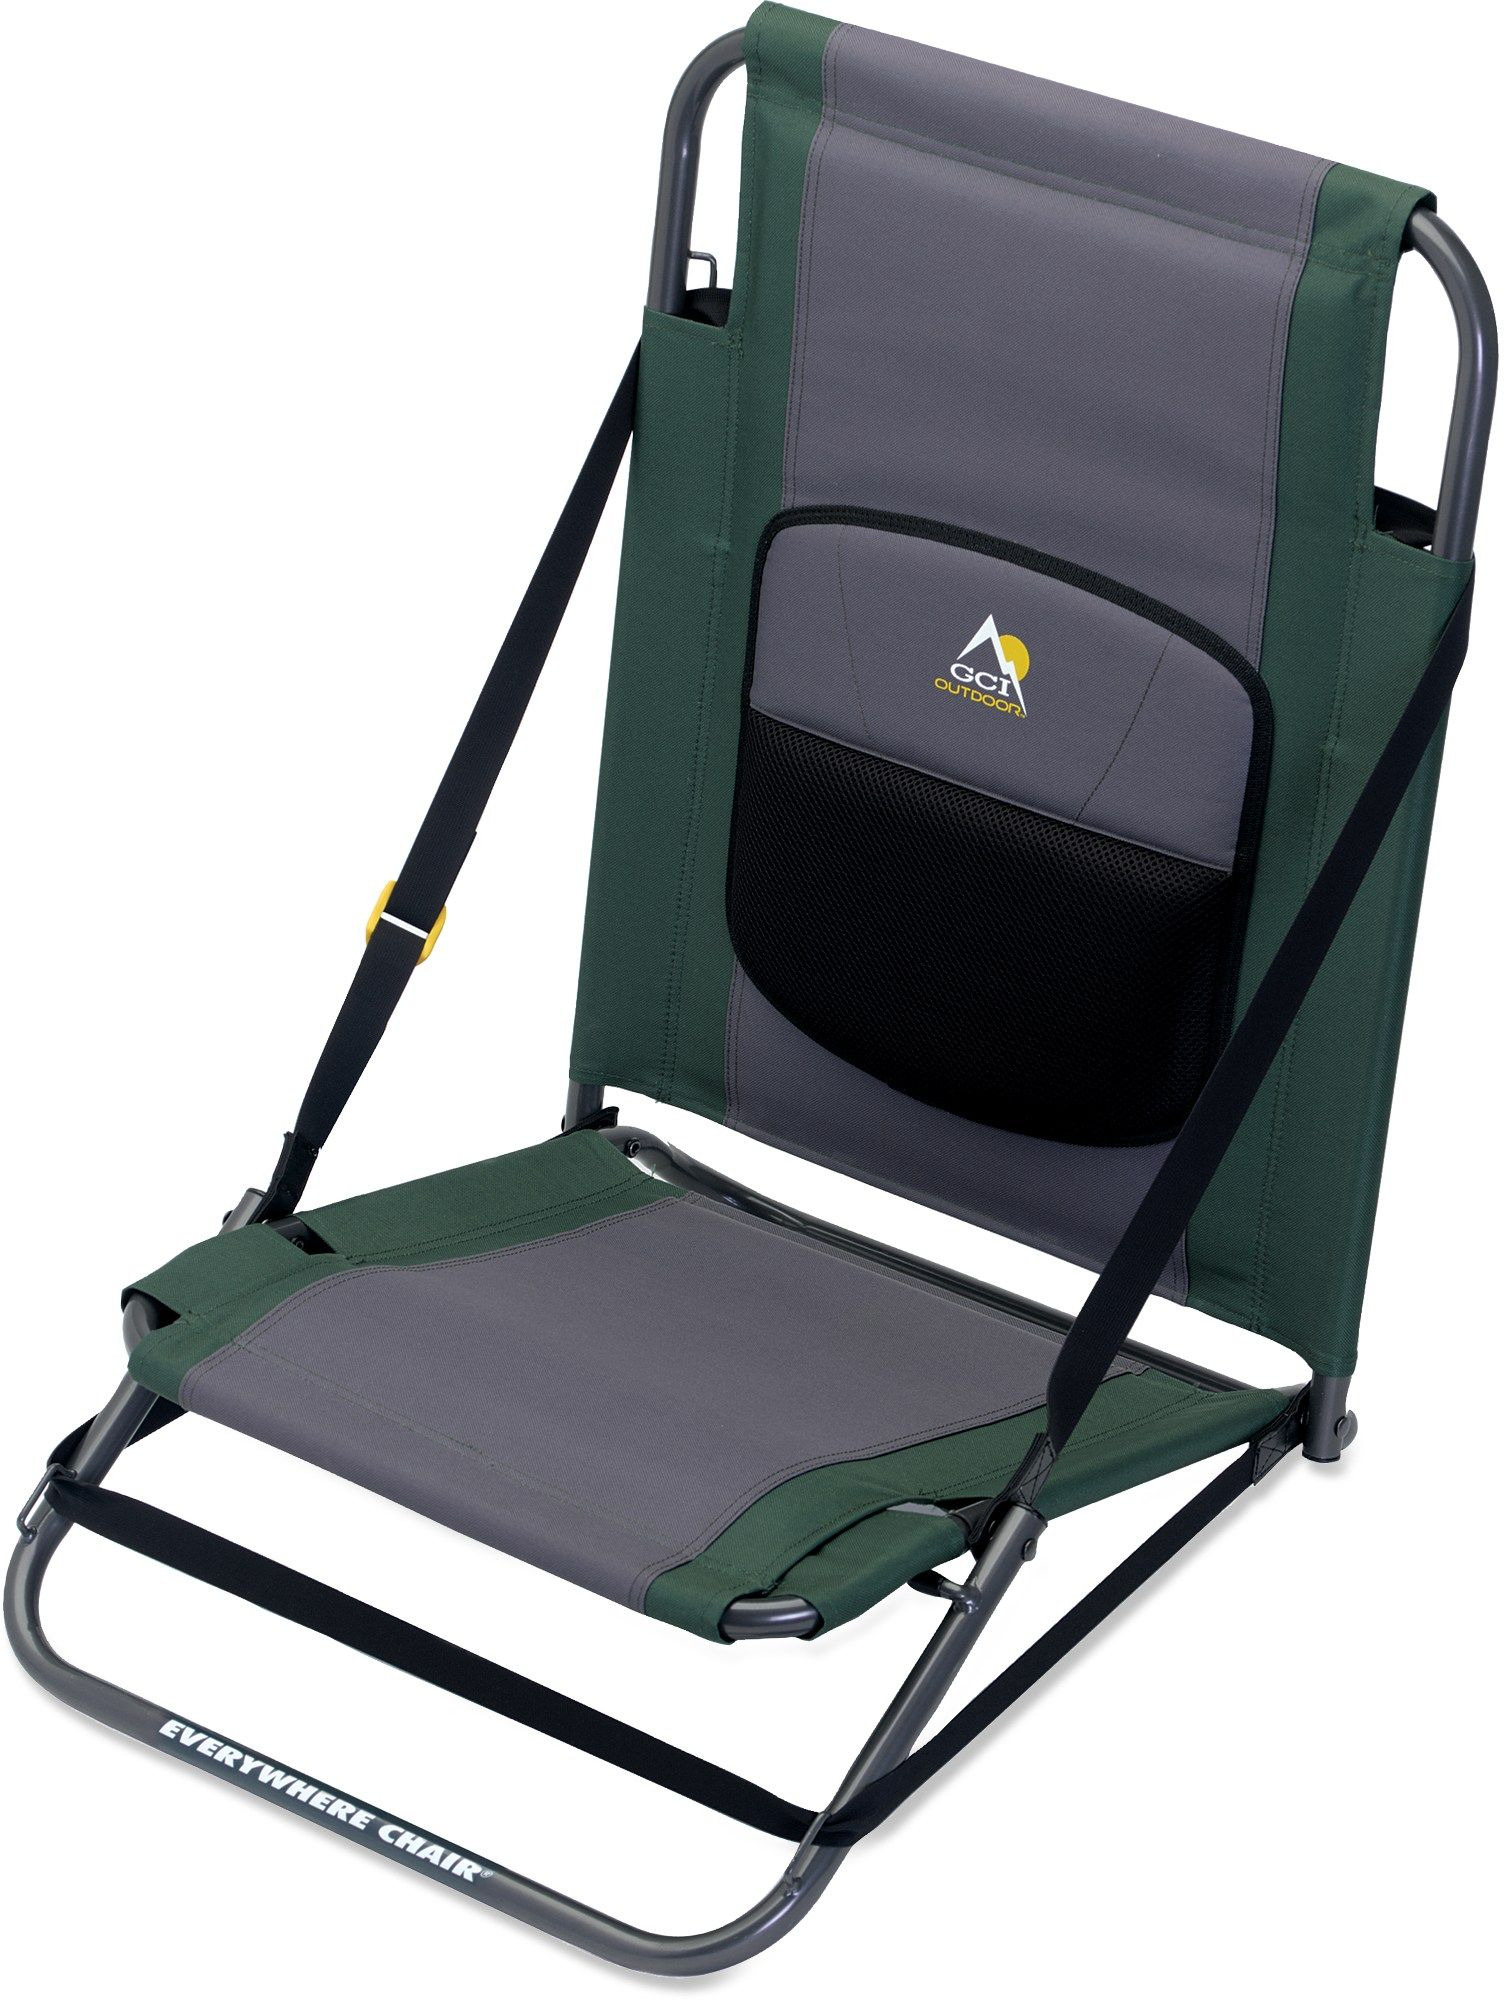 Attractive GCI Outdoor Everywhere Chair